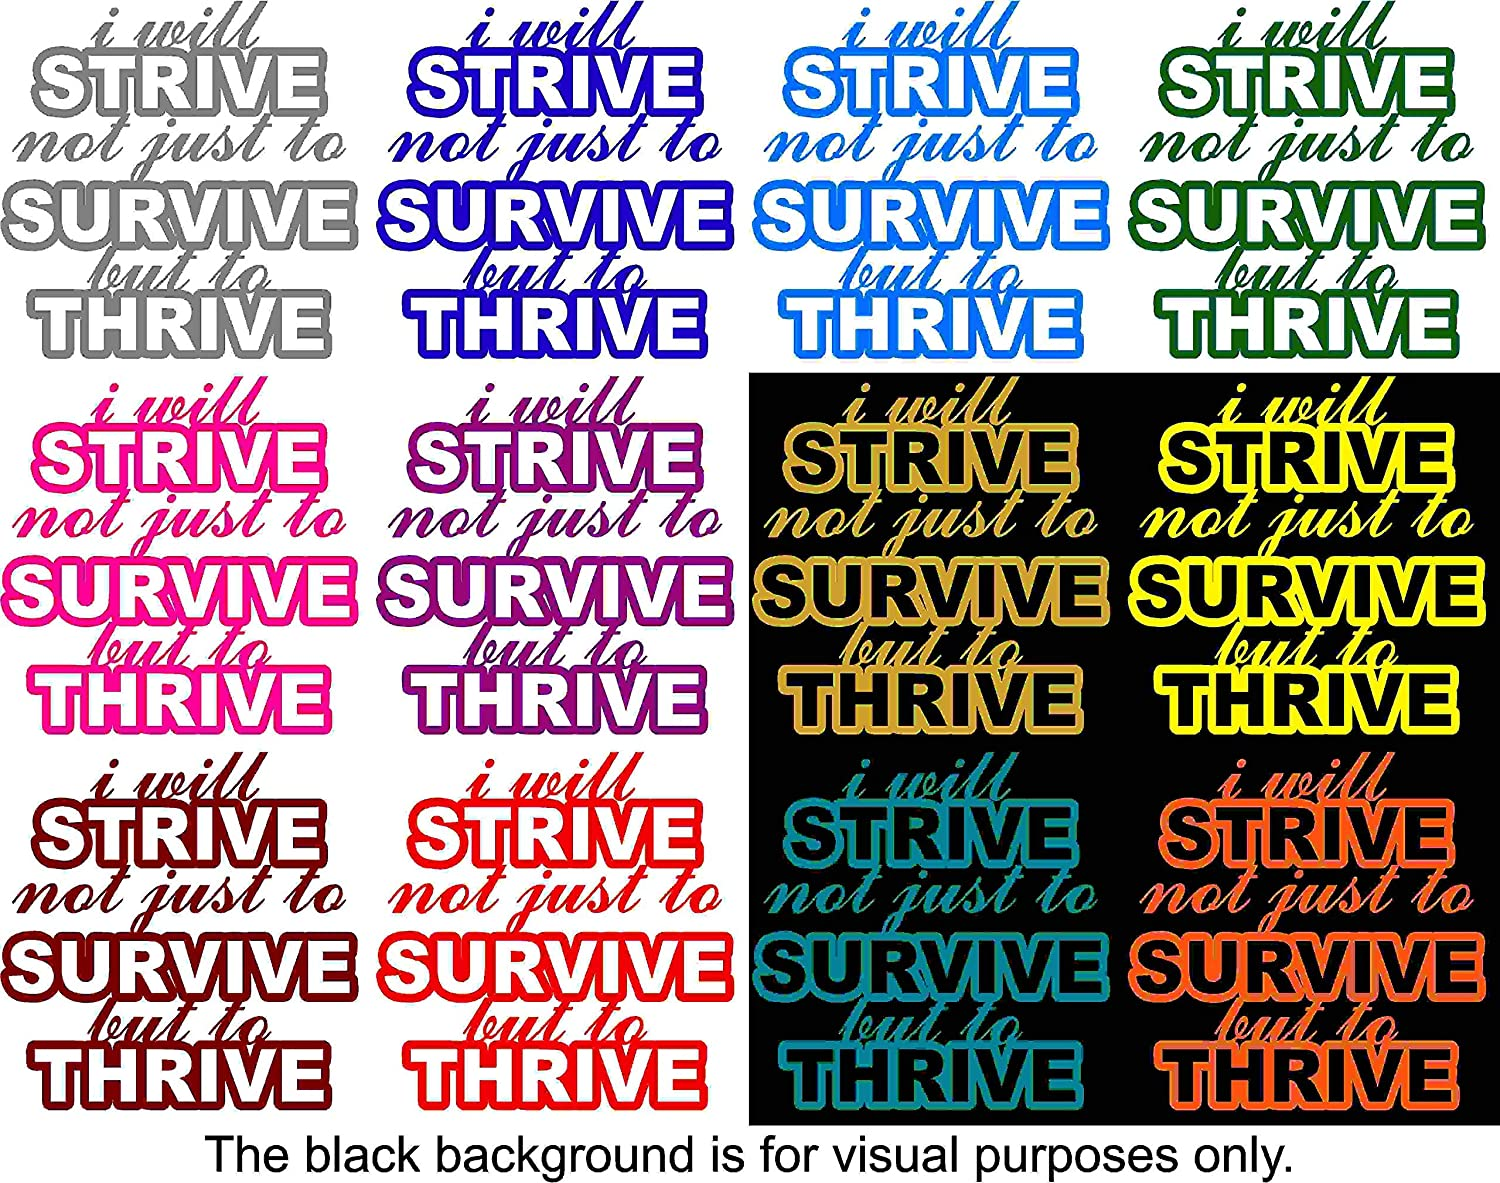 Motivation Quote I Will Strive Not Just To Survive But To Thrive Decal Sticker Vinyl Car Window Tumblers Wall Laptops Cellphones Phones Tablets Ipads Helmets Motorcycles Computer Towers V and T Gifts